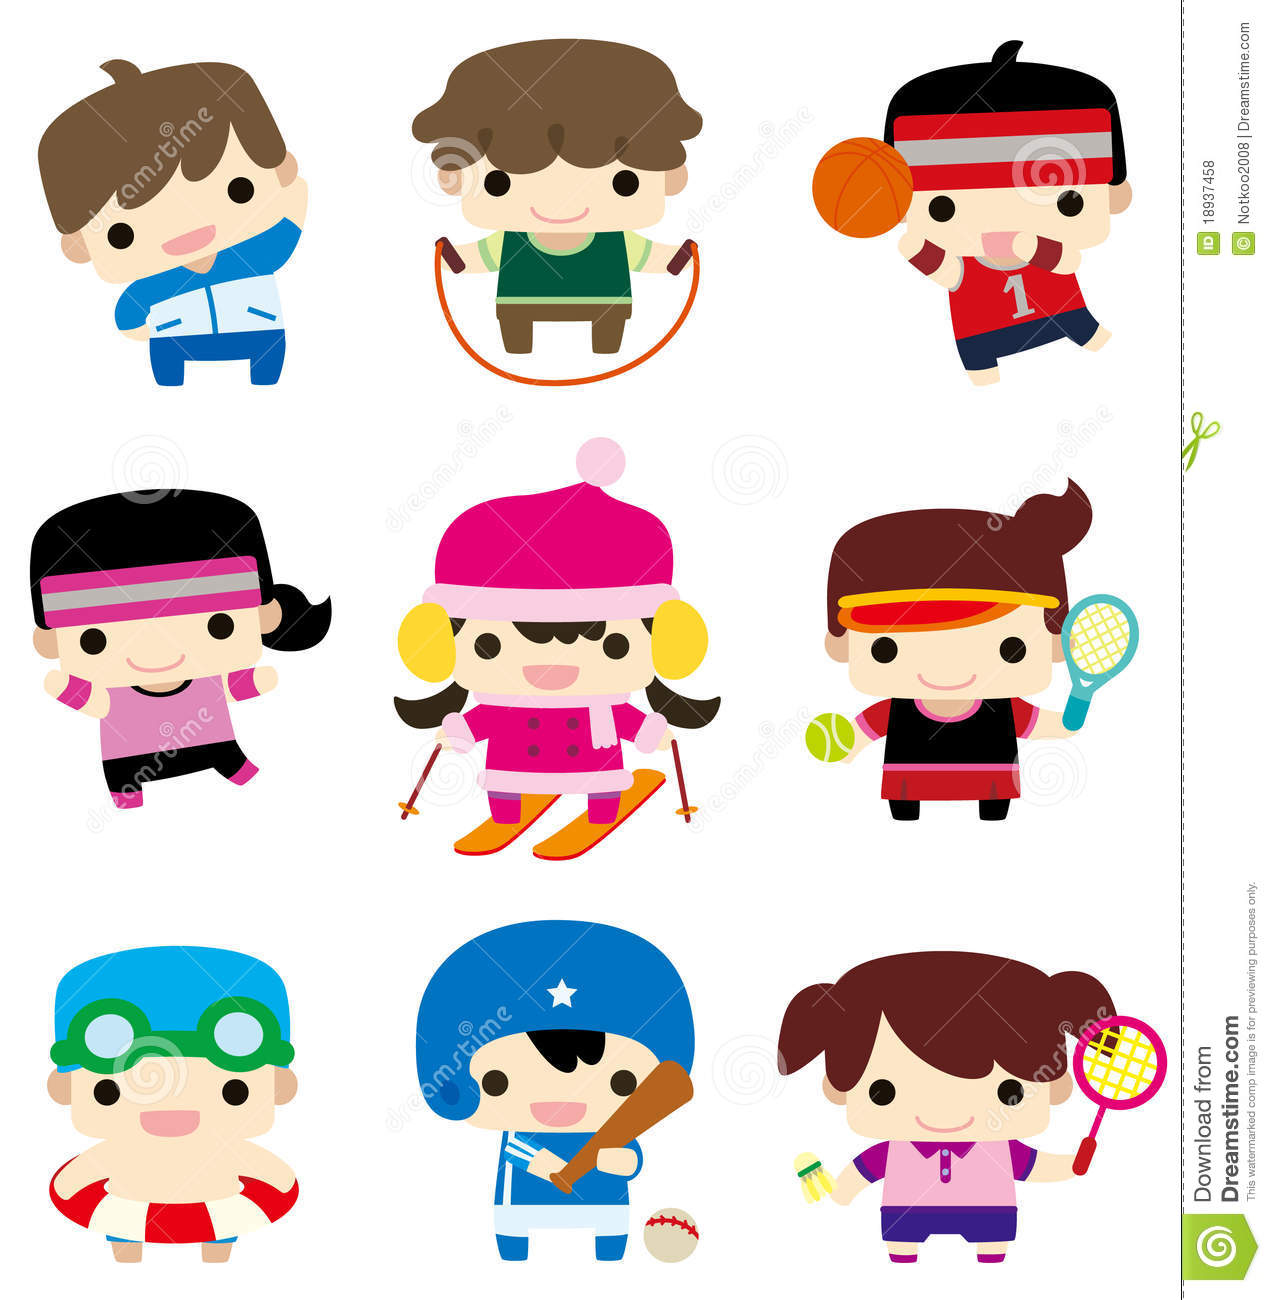 Cartoon Sport Player Icon Royalty Free Stock Photos - Image: 18937458